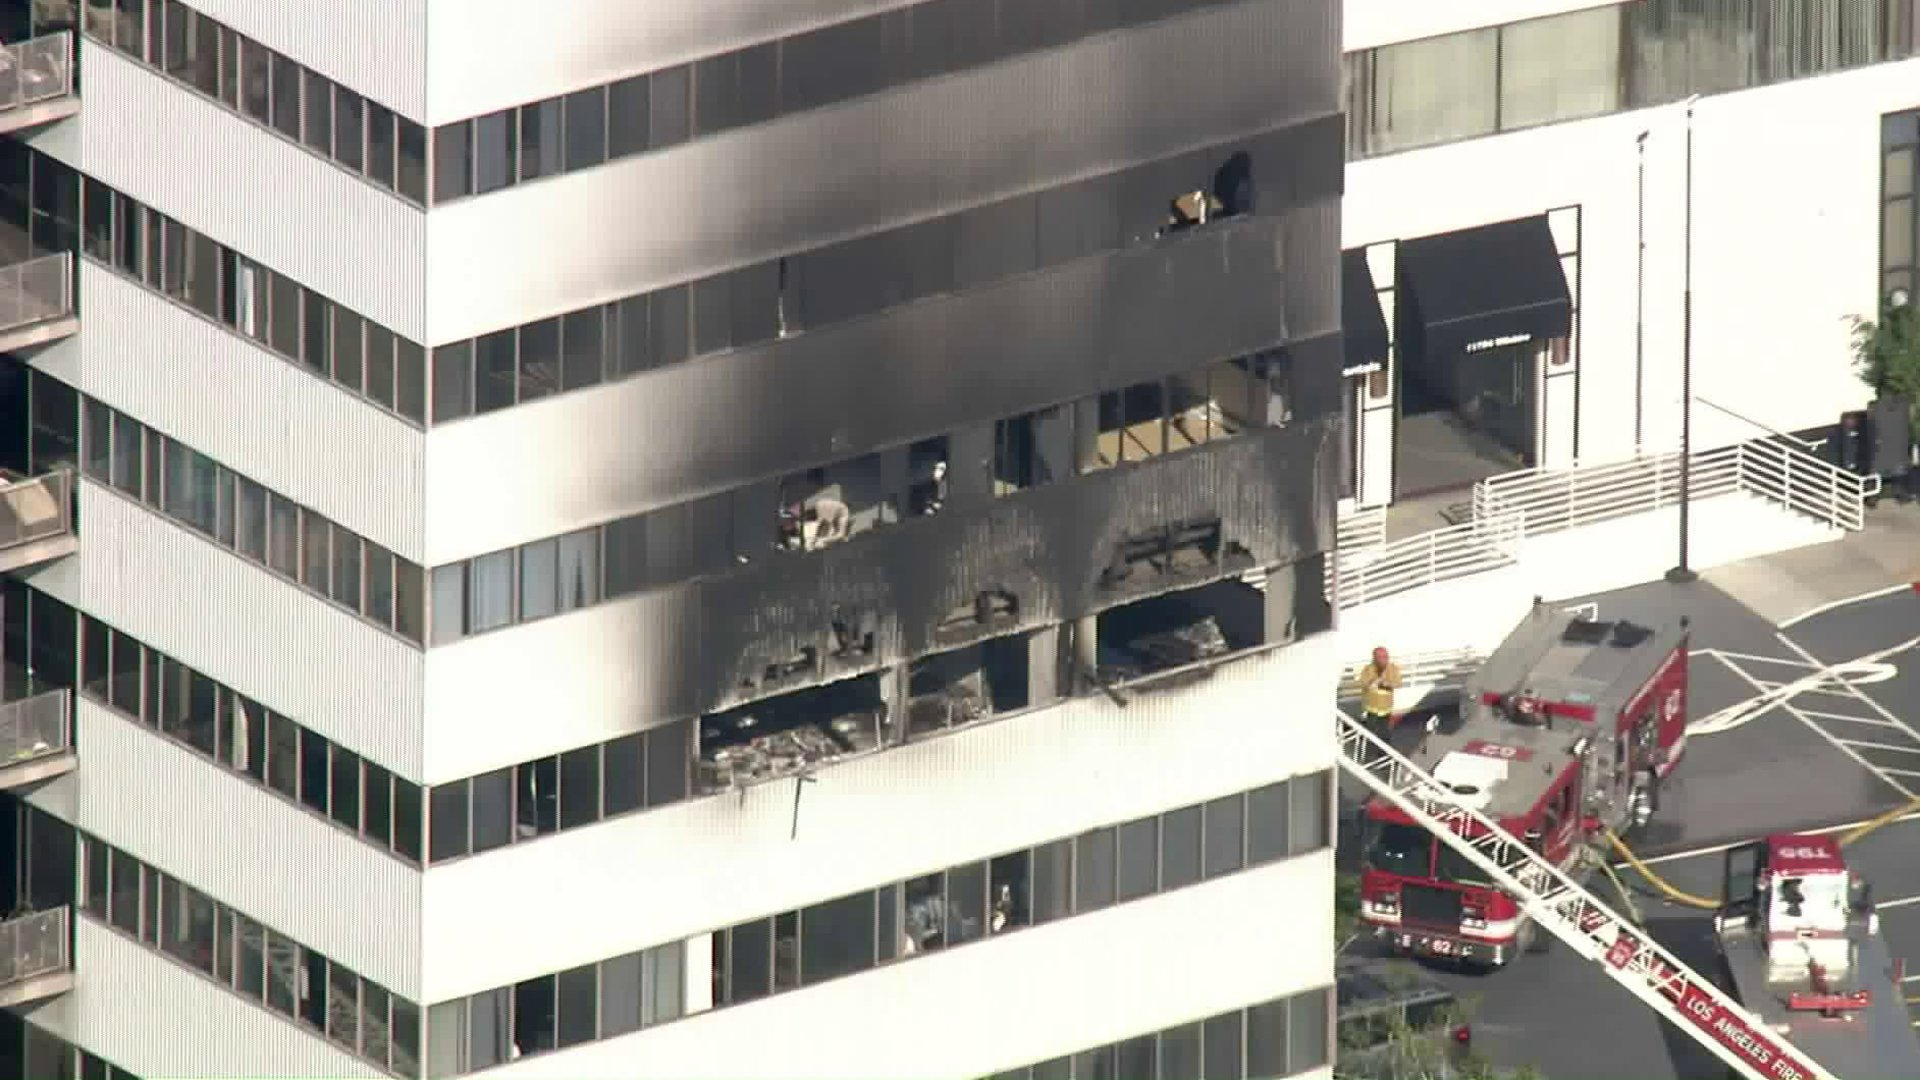 The side of a high-rise apartment in the Brentwood area is blackened after a fire on Jan. 29, 2020. (Credit: KTLA)